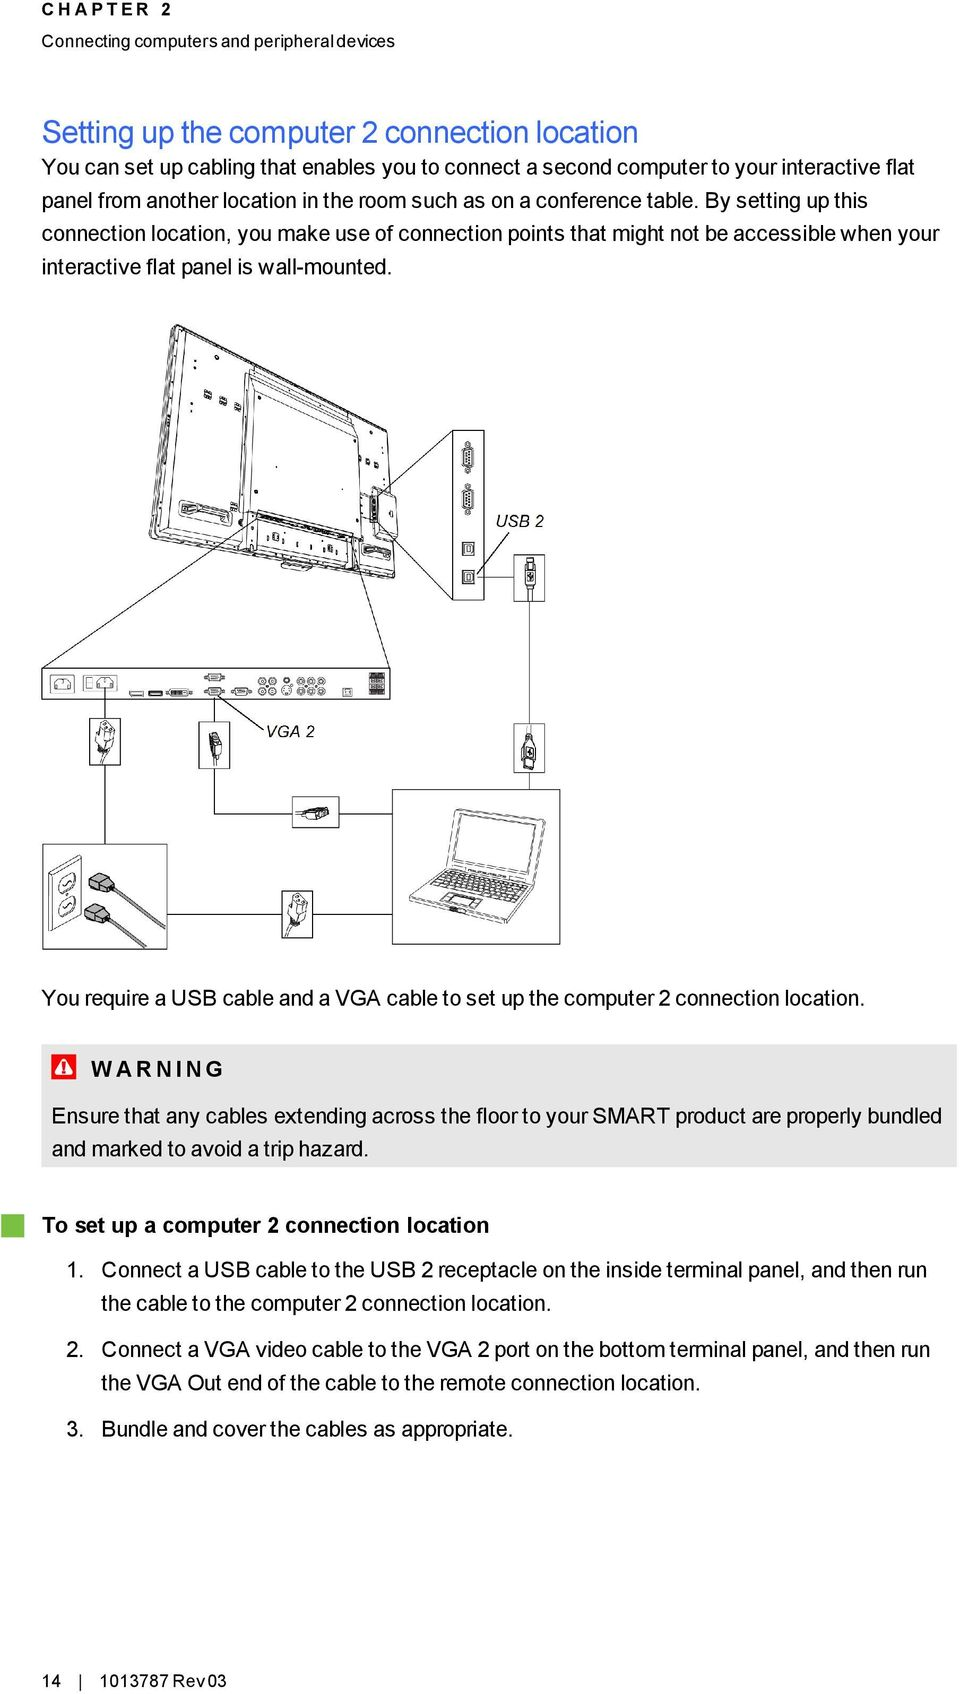 By setting up this connection location, you make use of connection points that might not be accessible when your interactive flat panel is wall-mounted.